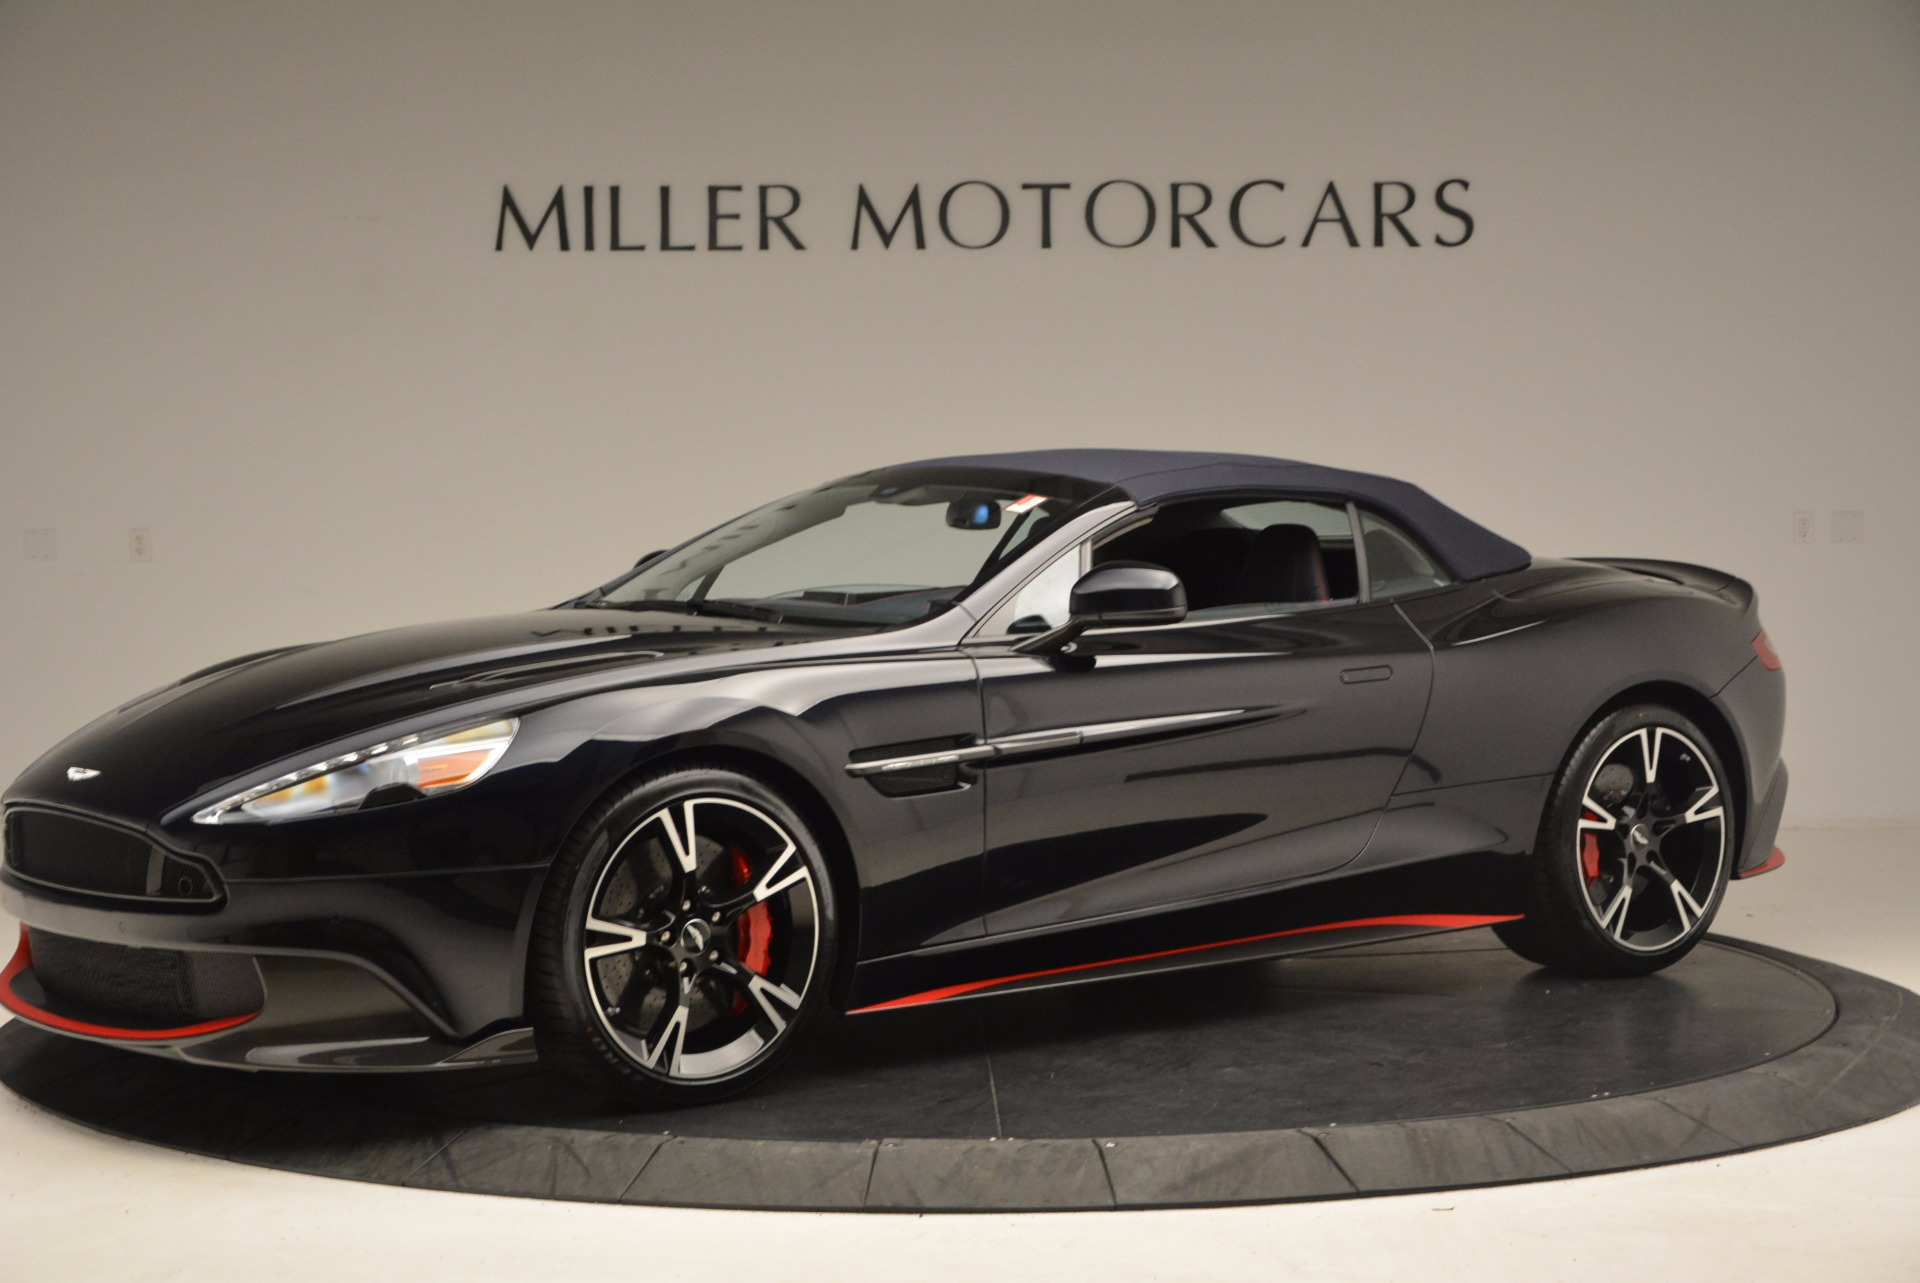 New 2018 Aston Martin Vanquish S Volante For Sale Miller Motorcars Stock A1249